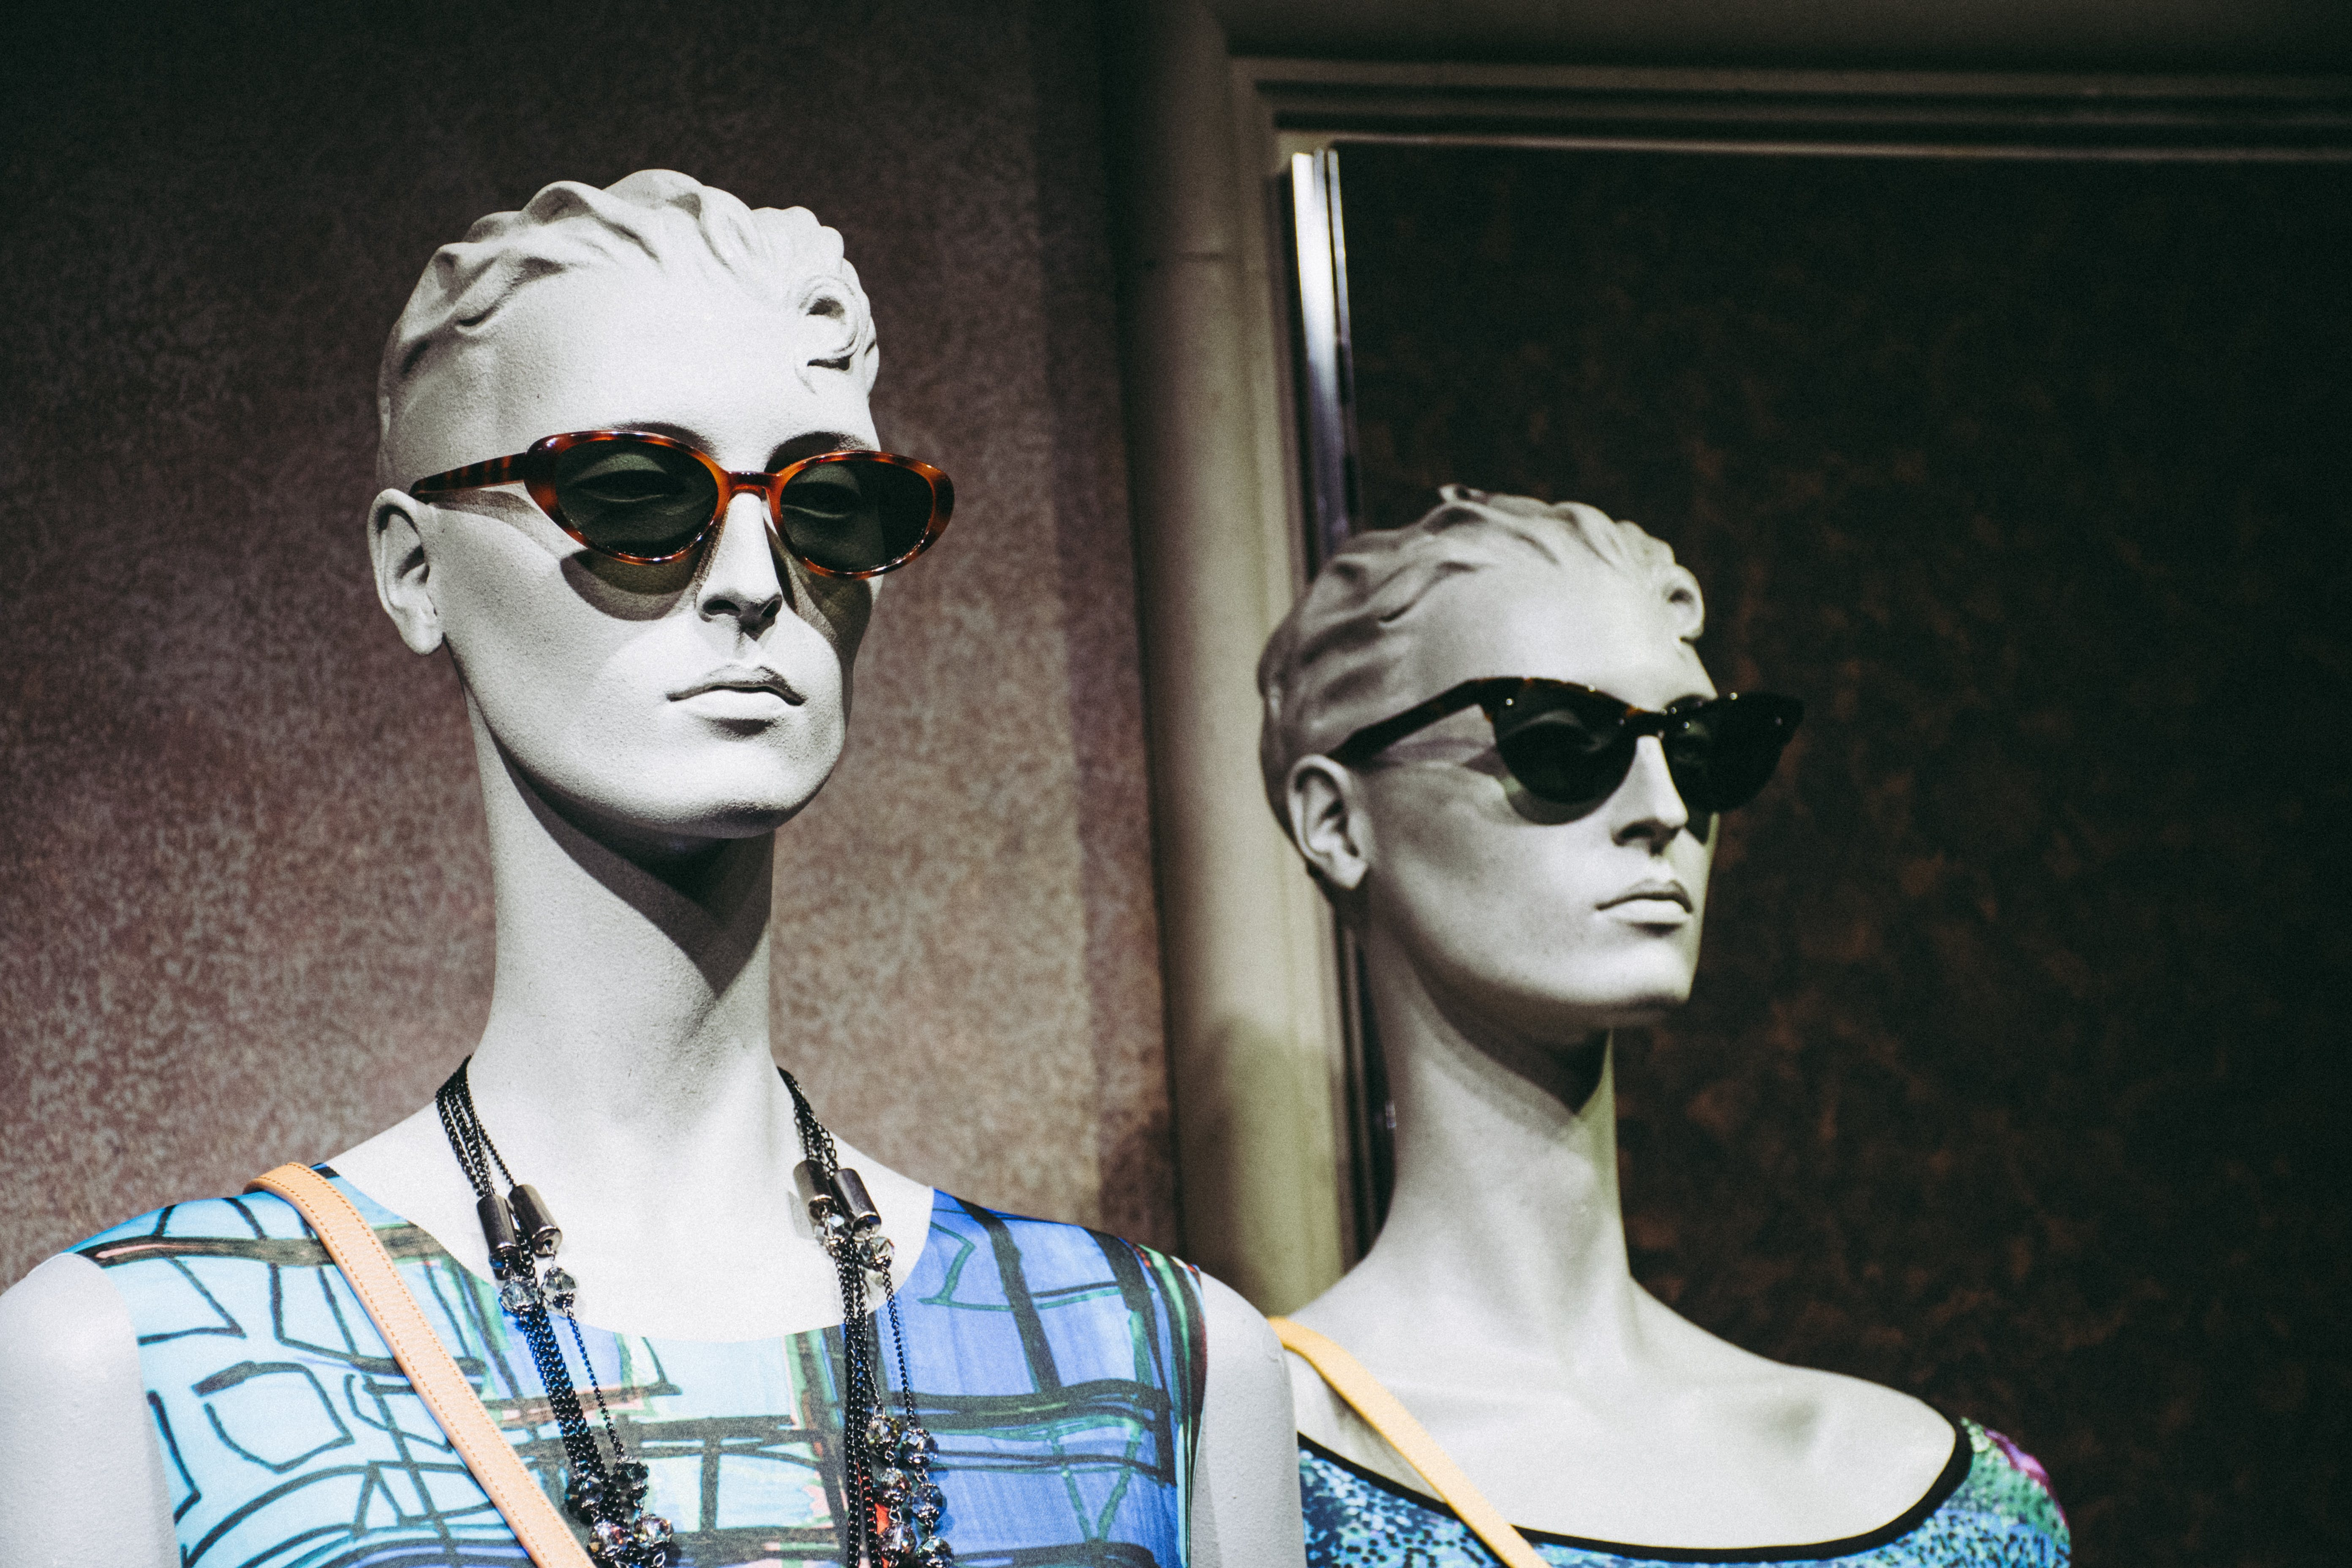 Two Female Mannequins Wearing Sunglasses